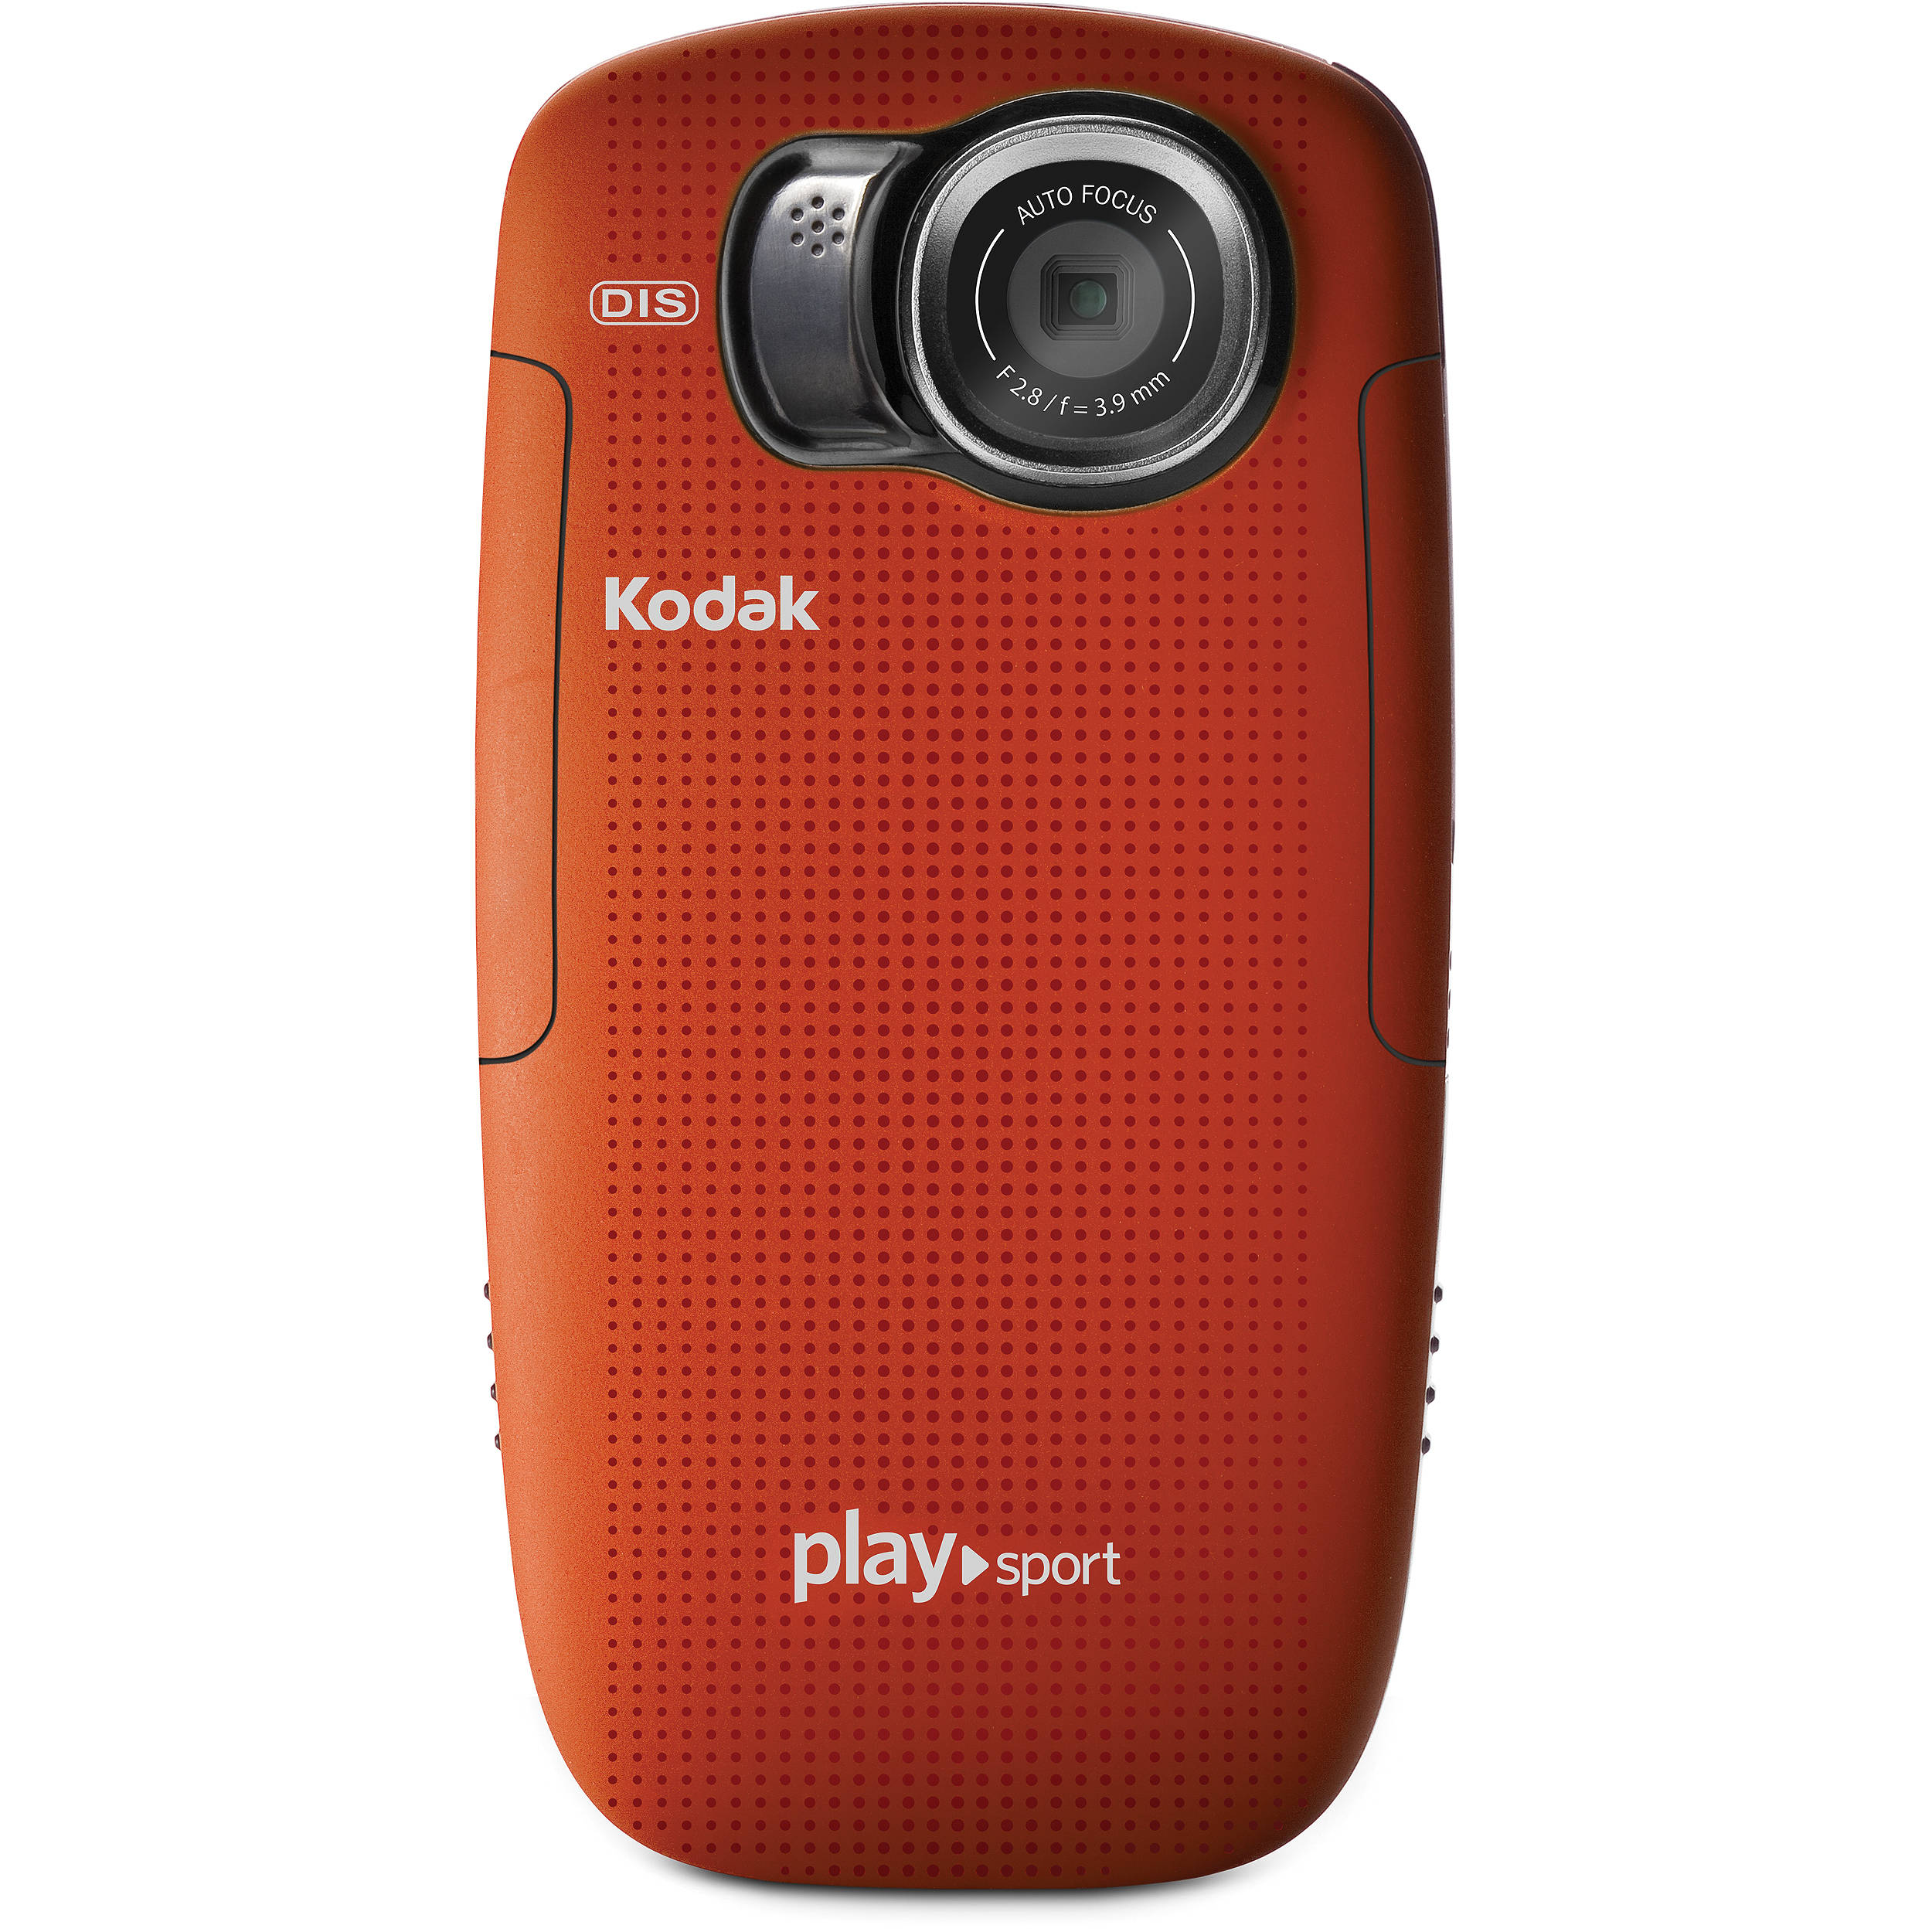 kodak playsport waterproof camera review